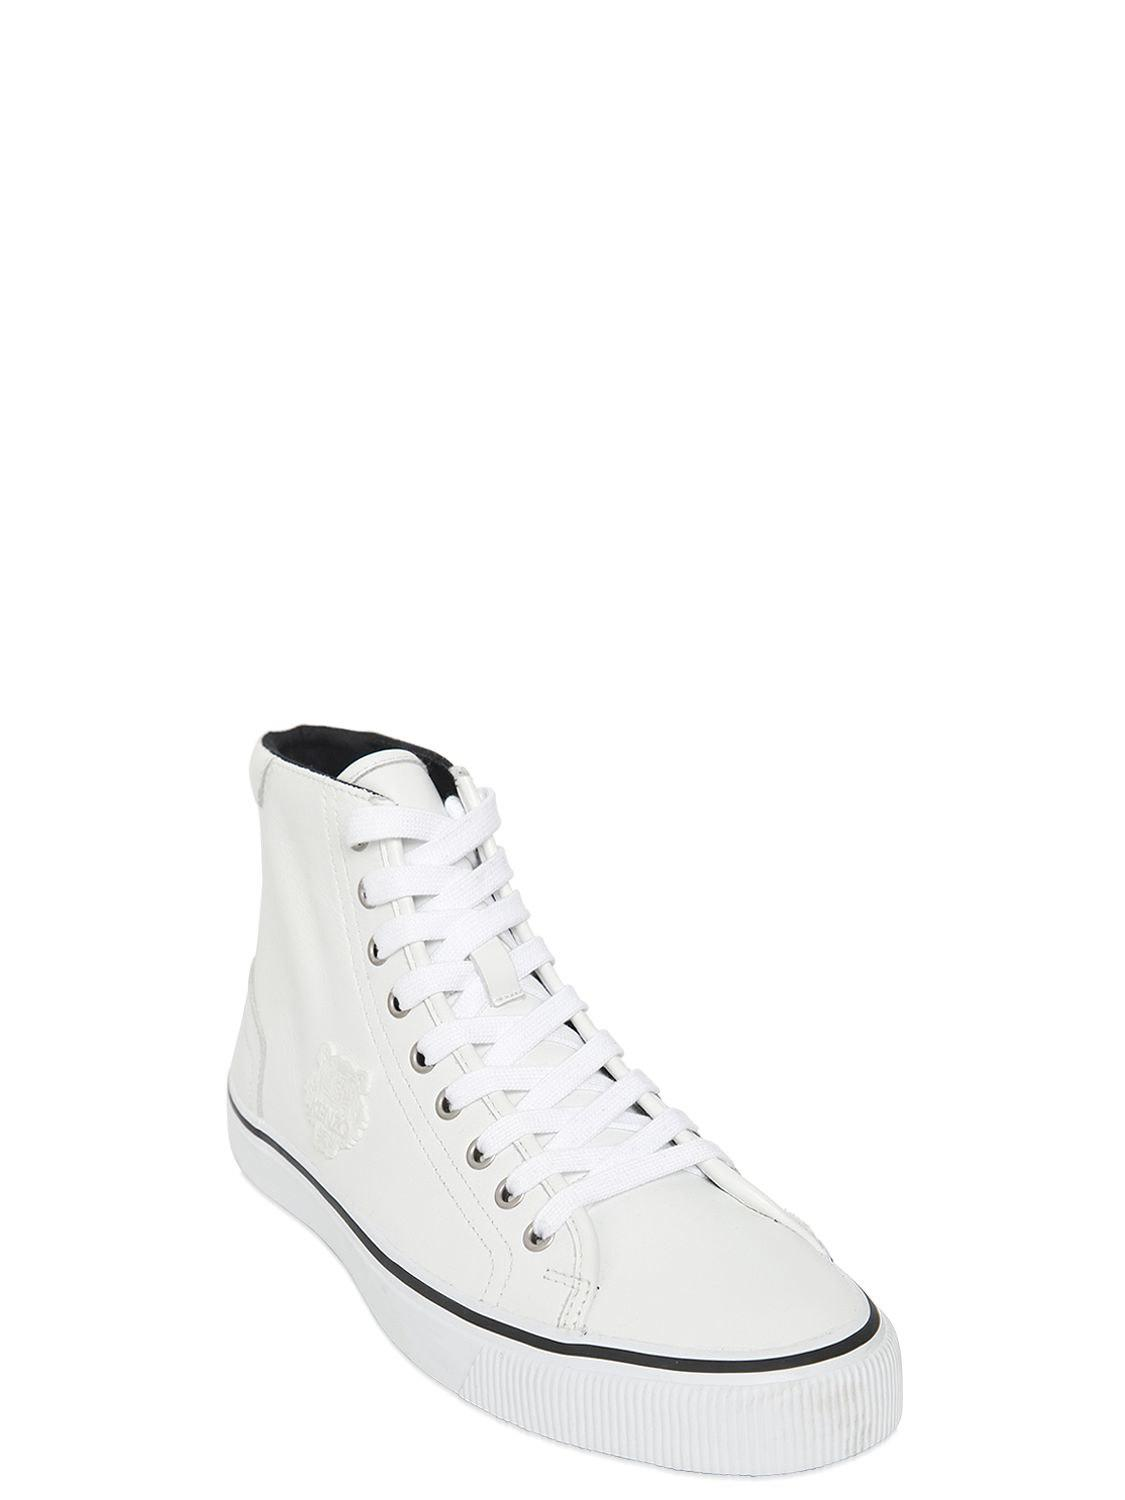 Kenzo TIGER PATCH LEATHER HIGH TOP SNEAKERS MbMsq9avKS